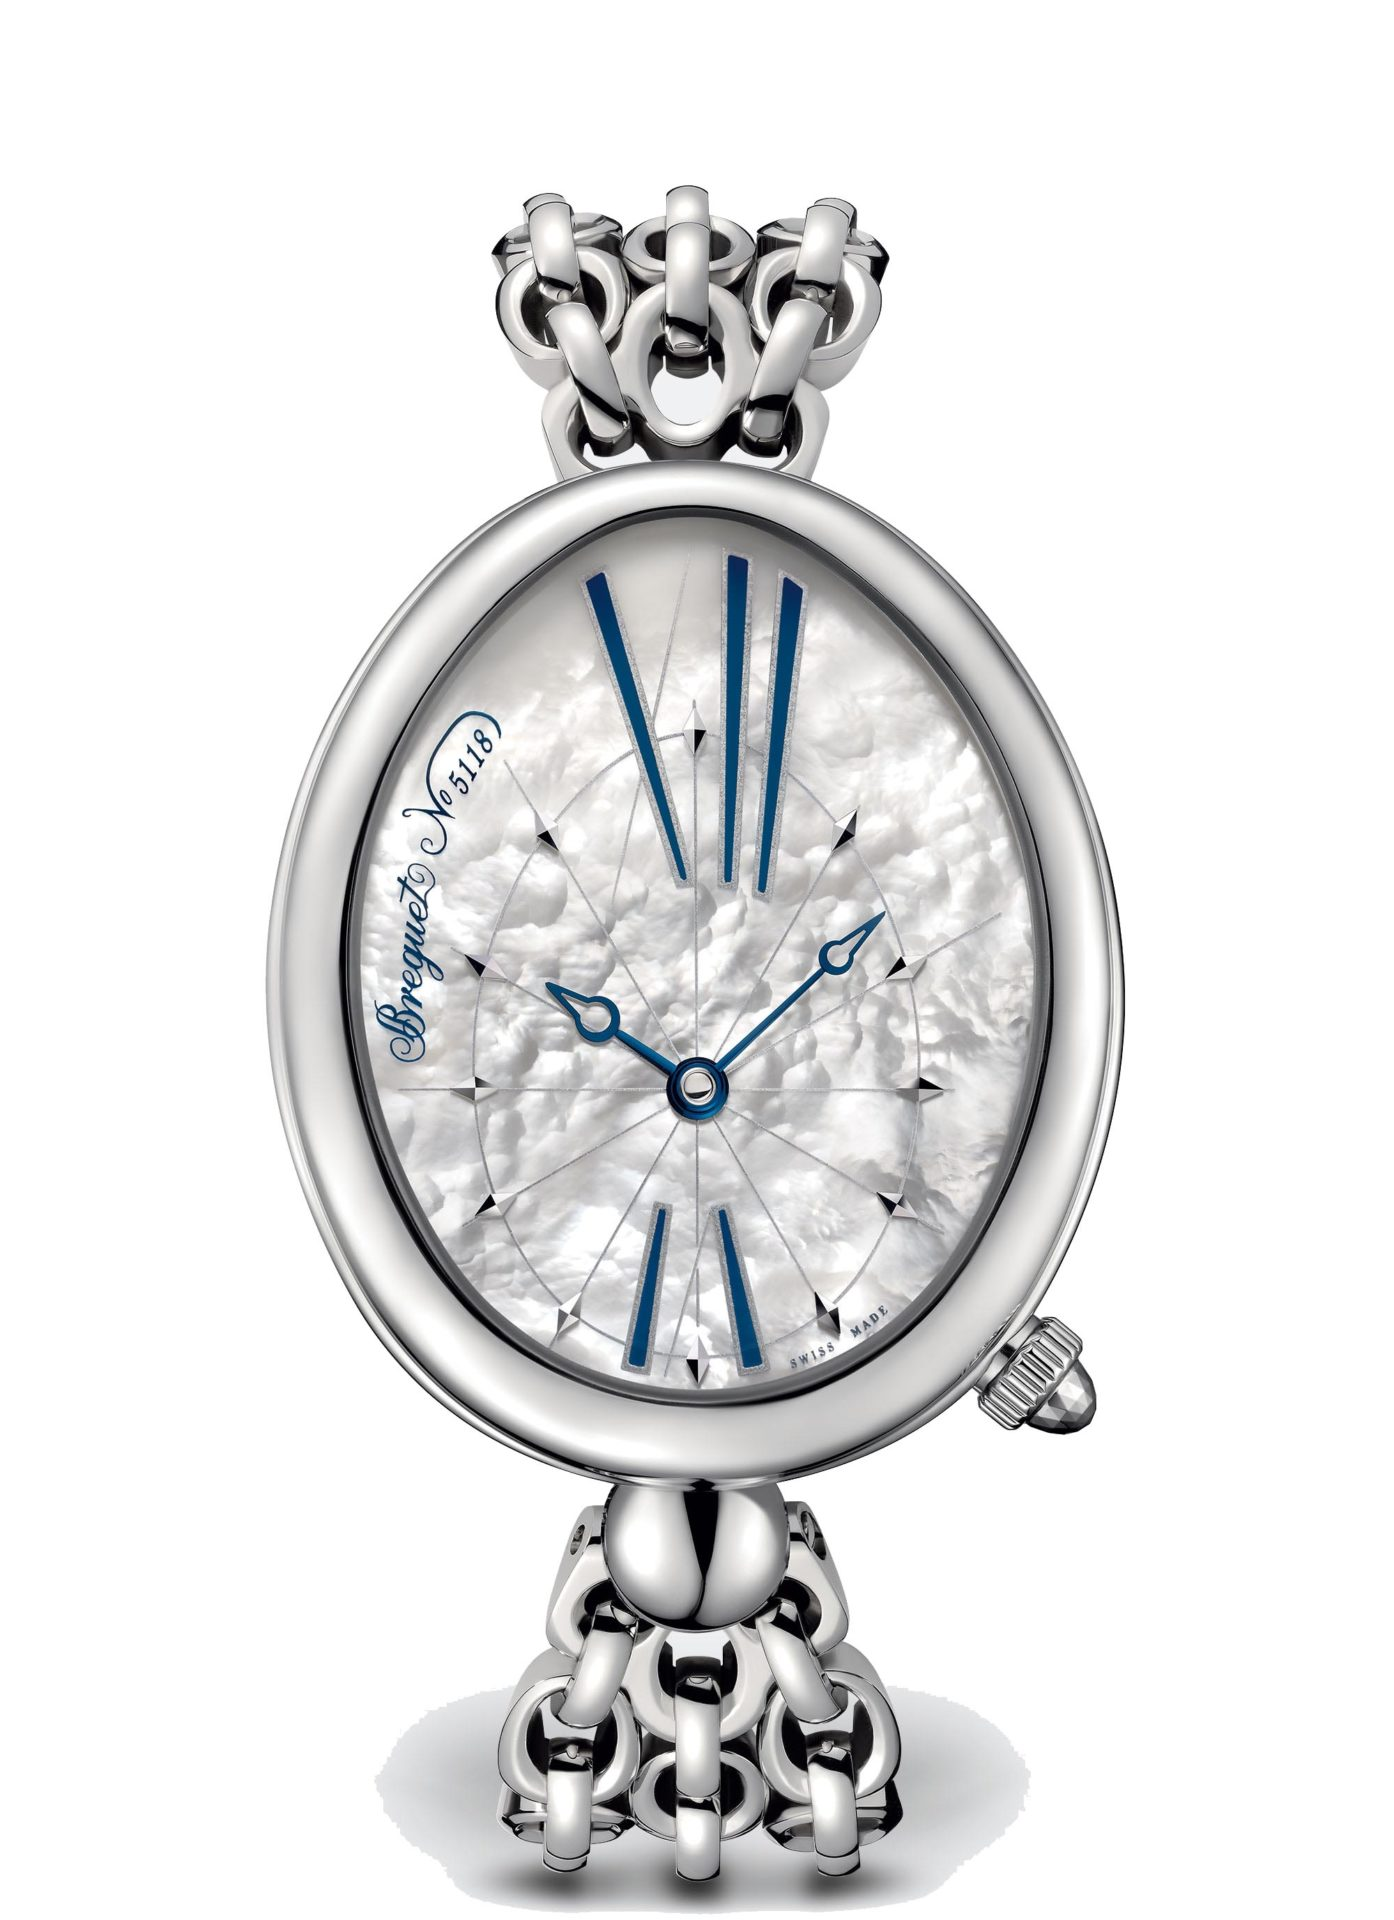 Breguet-Reine-de-Naples-8967-Hall-of-Time-8967st-51-j50